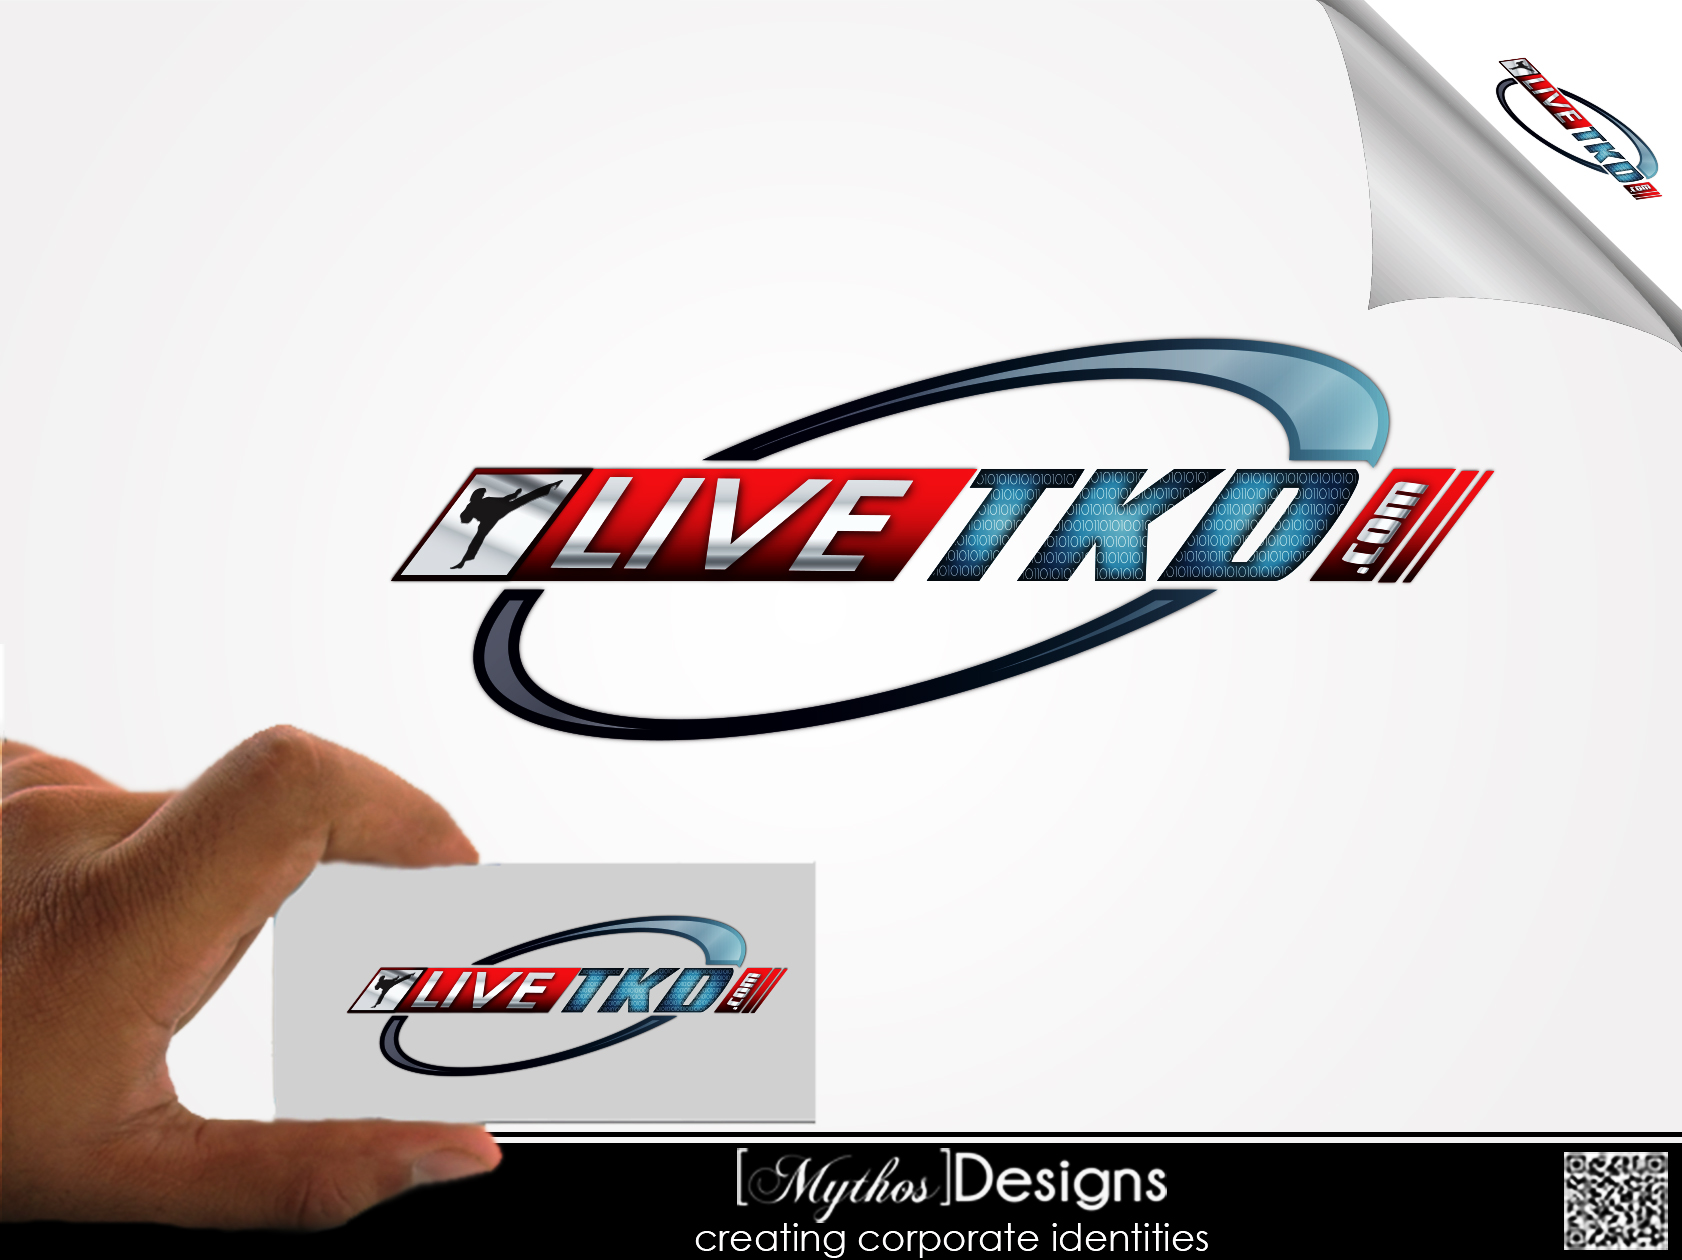 Logo Design by Mythos Designs - Entry No. 210 in the Logo Design Contest New Logo Design for LiveTKD.com.